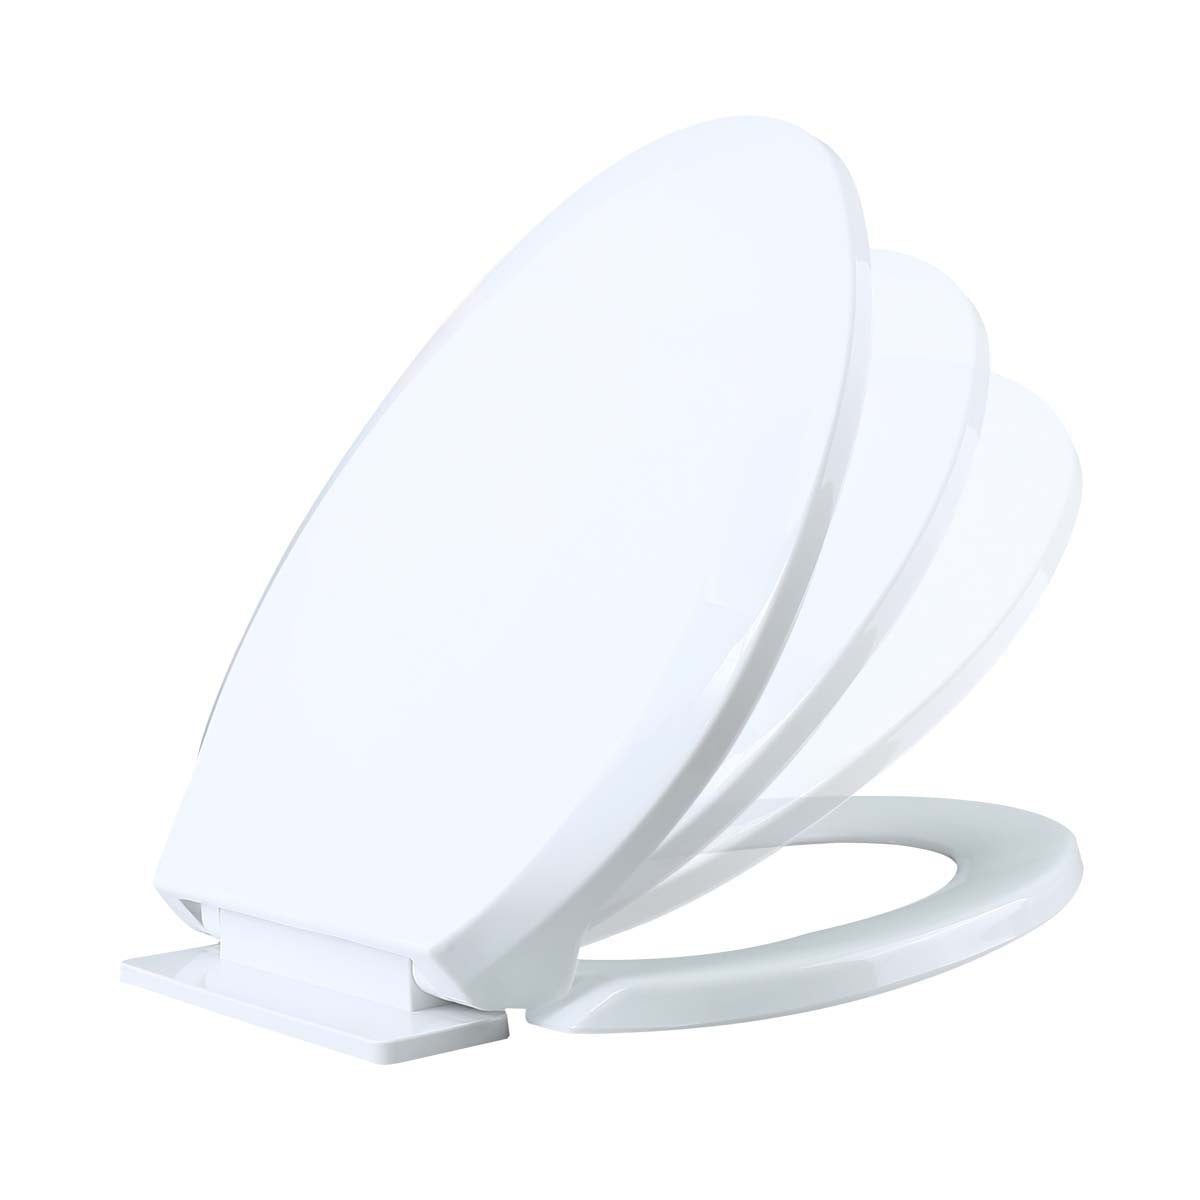 Peachy Renovators Supply White Slow Close No Slam Plastic Elongated Toilet Seat Andrewgaddart Wooden Chair Designs For Living Room Andrewgaddartcom